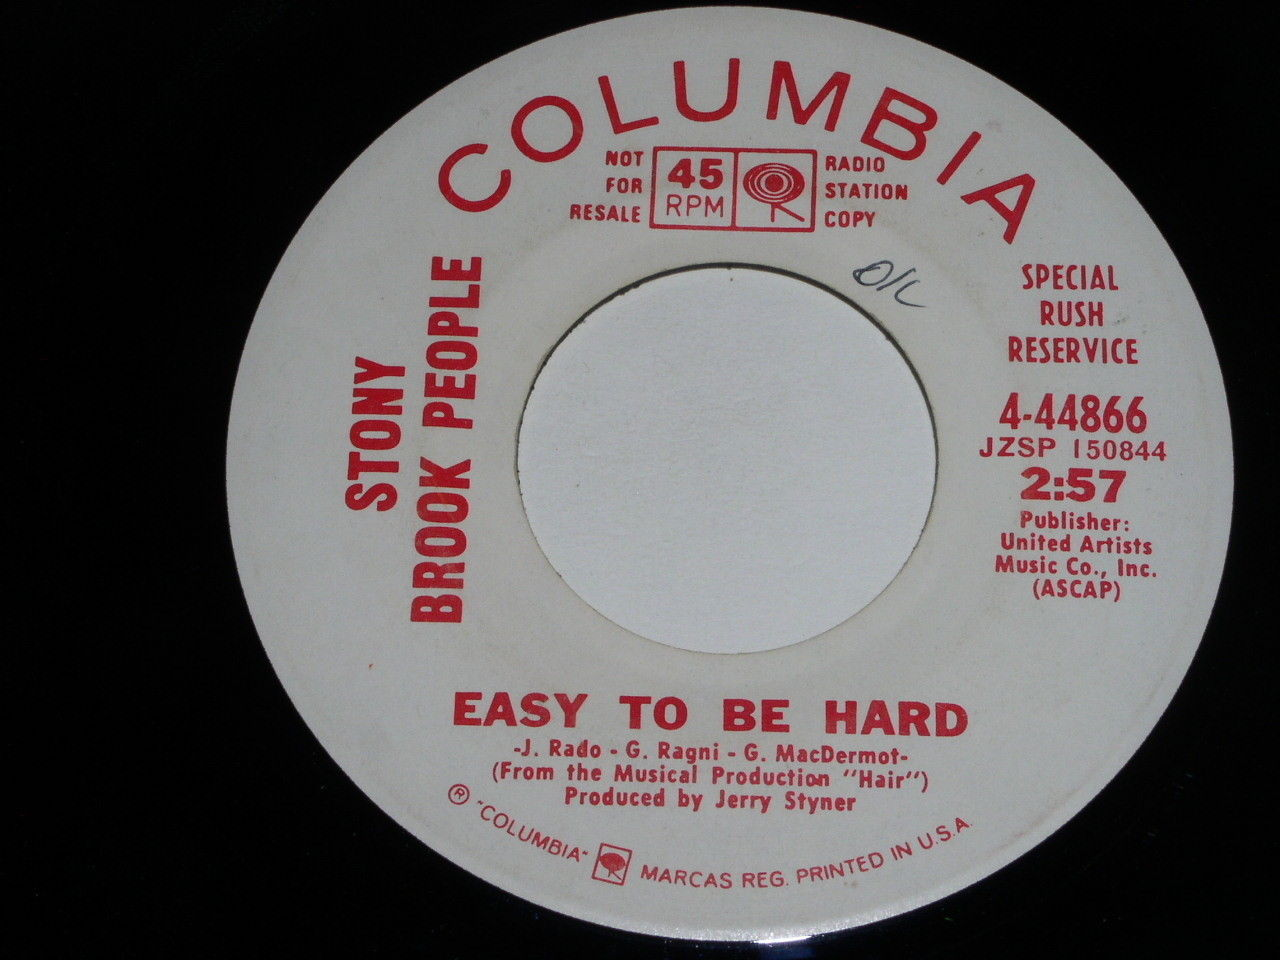 Stony Brook People Easy To Be Hard 45 Rpm Record Vintage Columbia Promotional